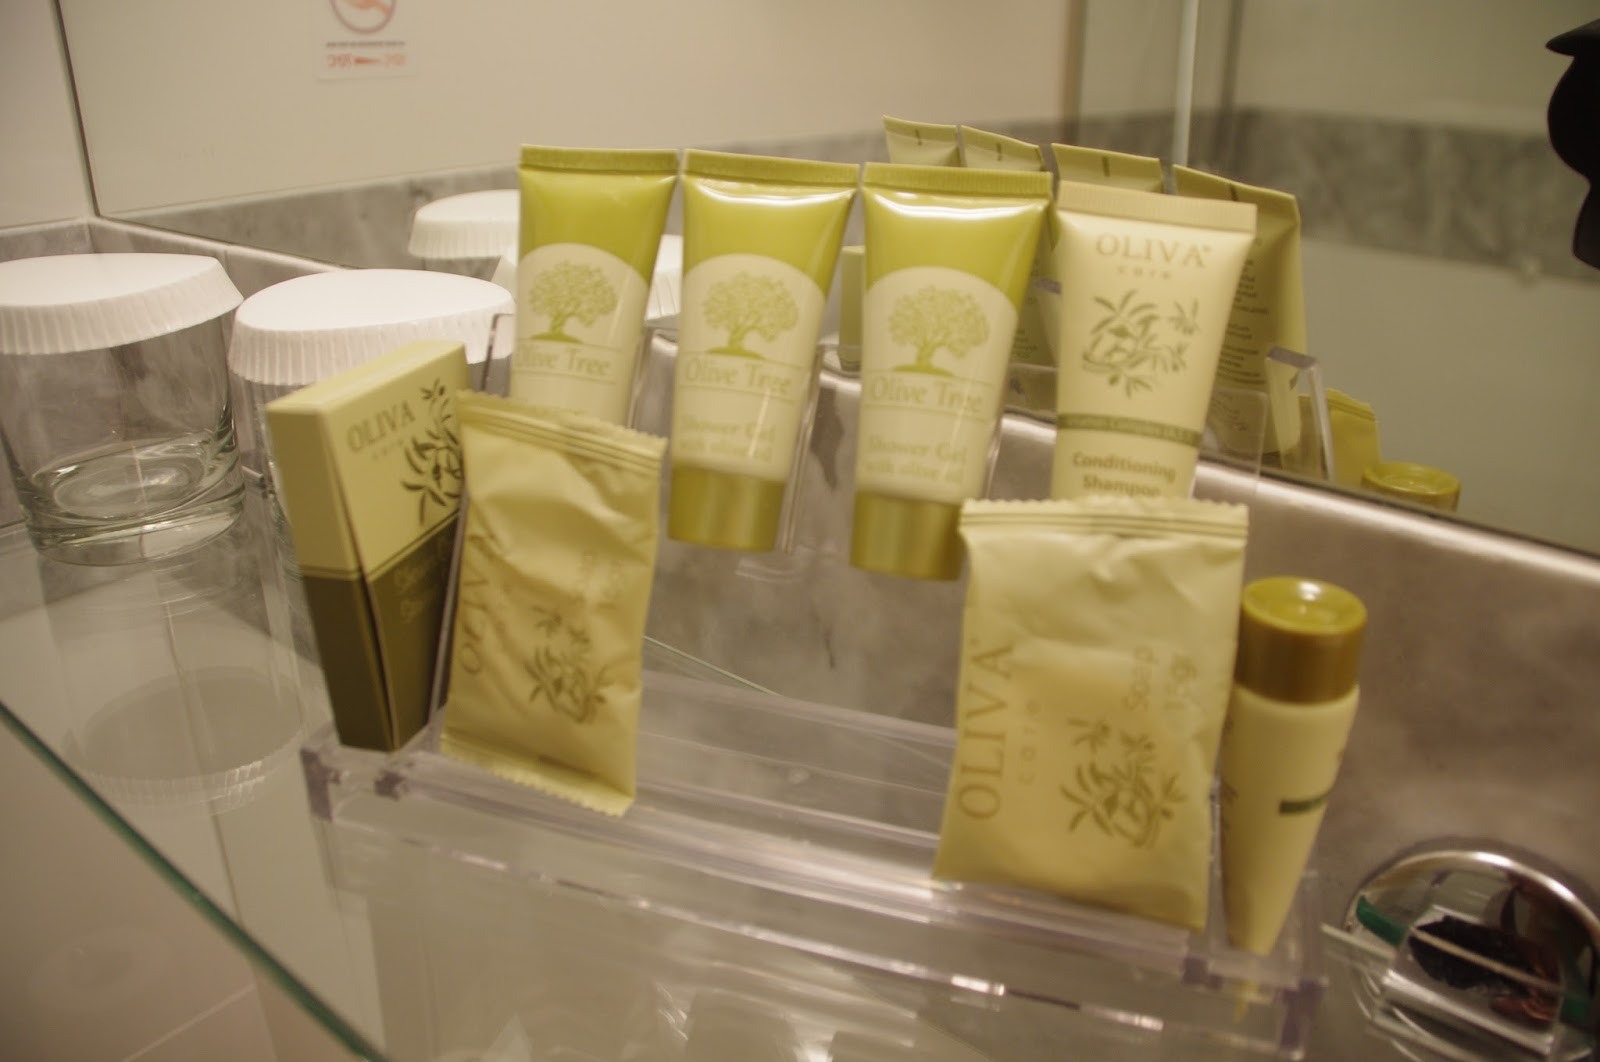 The Herodion Hotel Toiletries